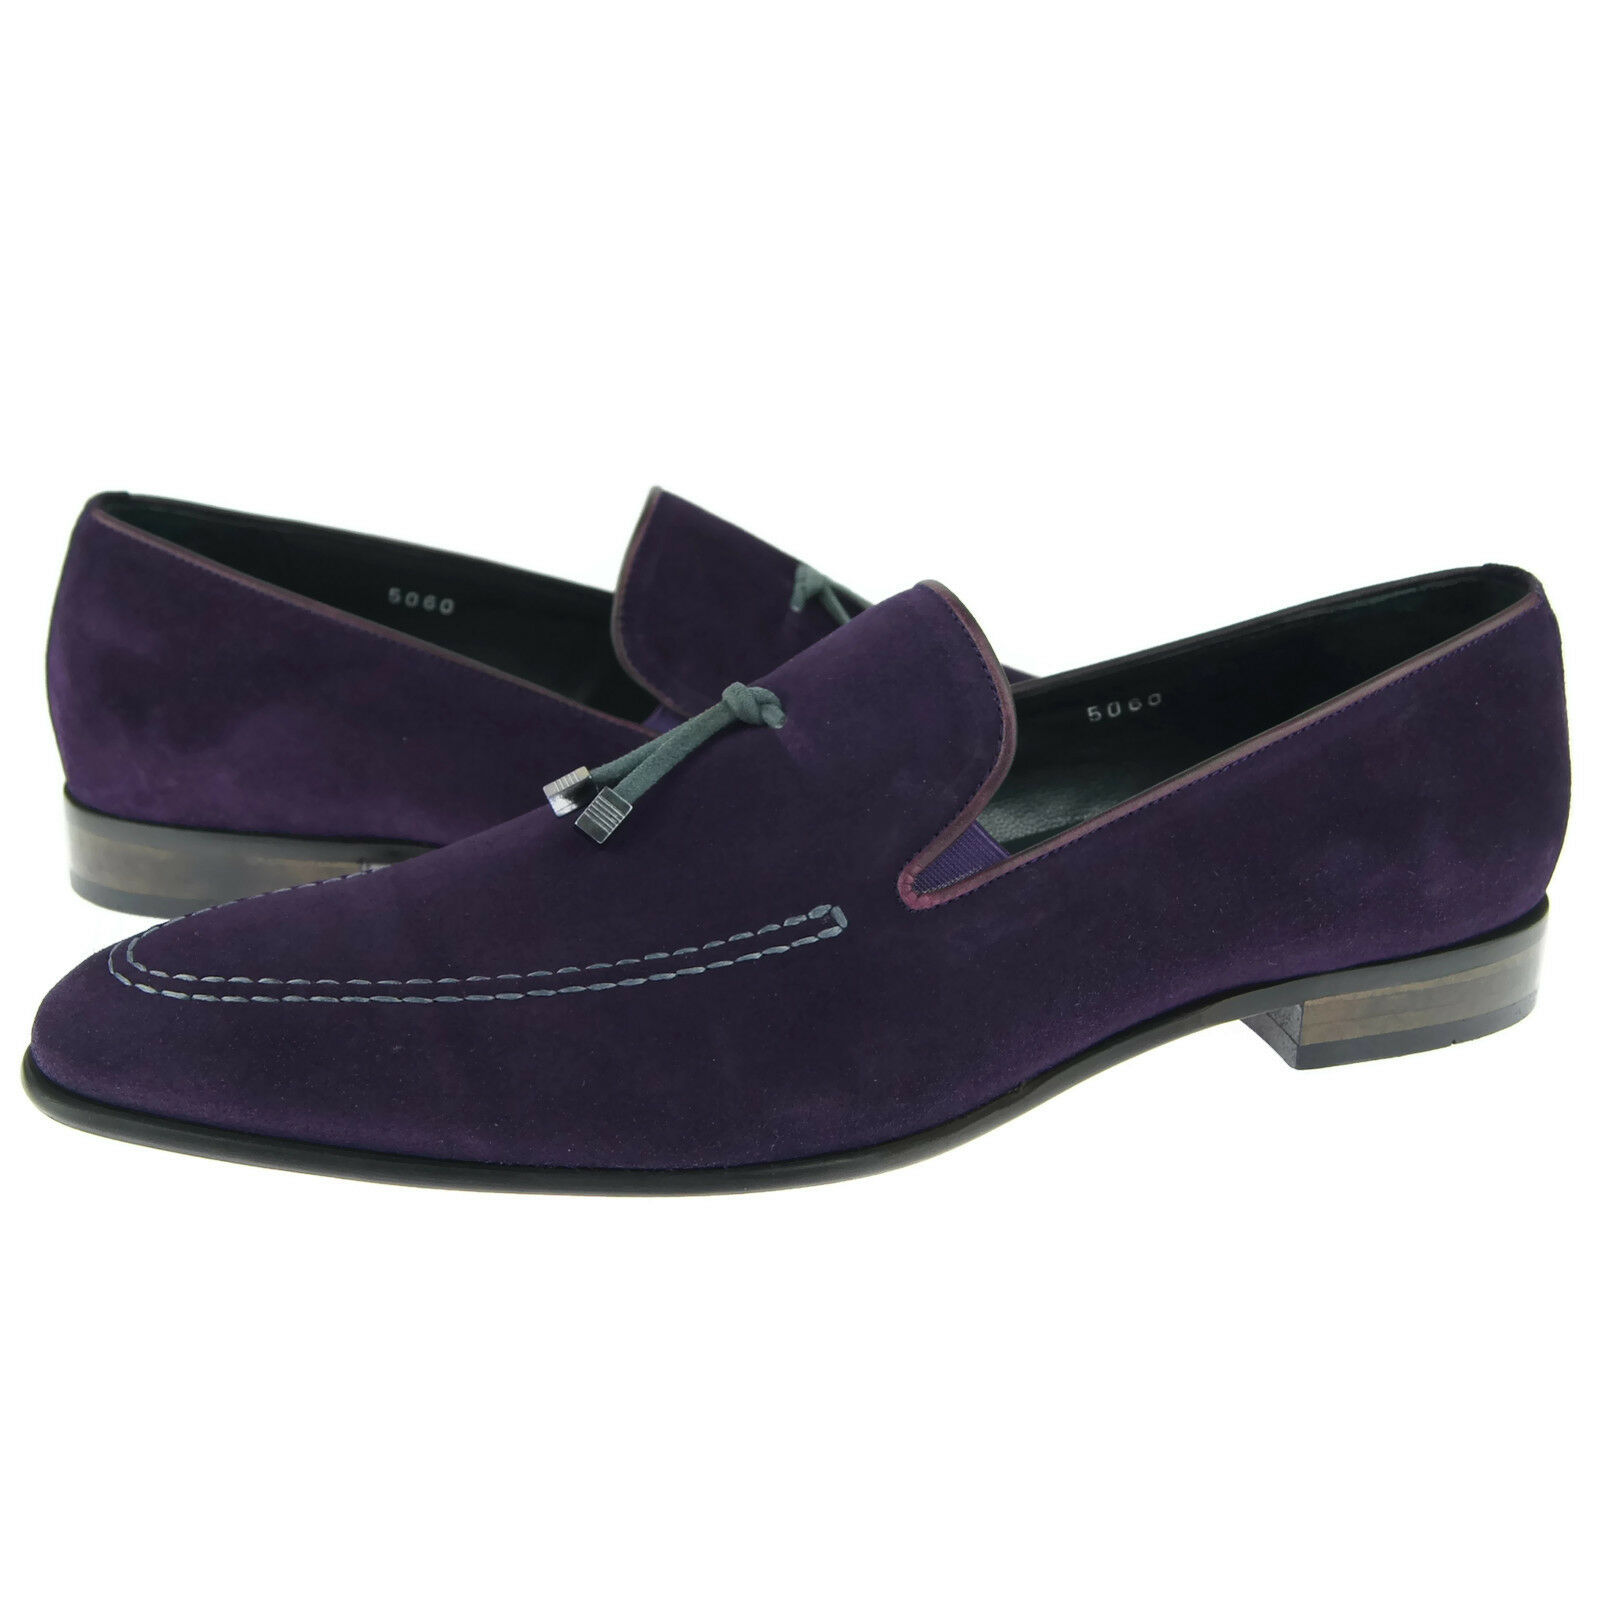 Corrente 5060 Suede Slip-on Loafer, Men's Dress Casual shoes, Purple